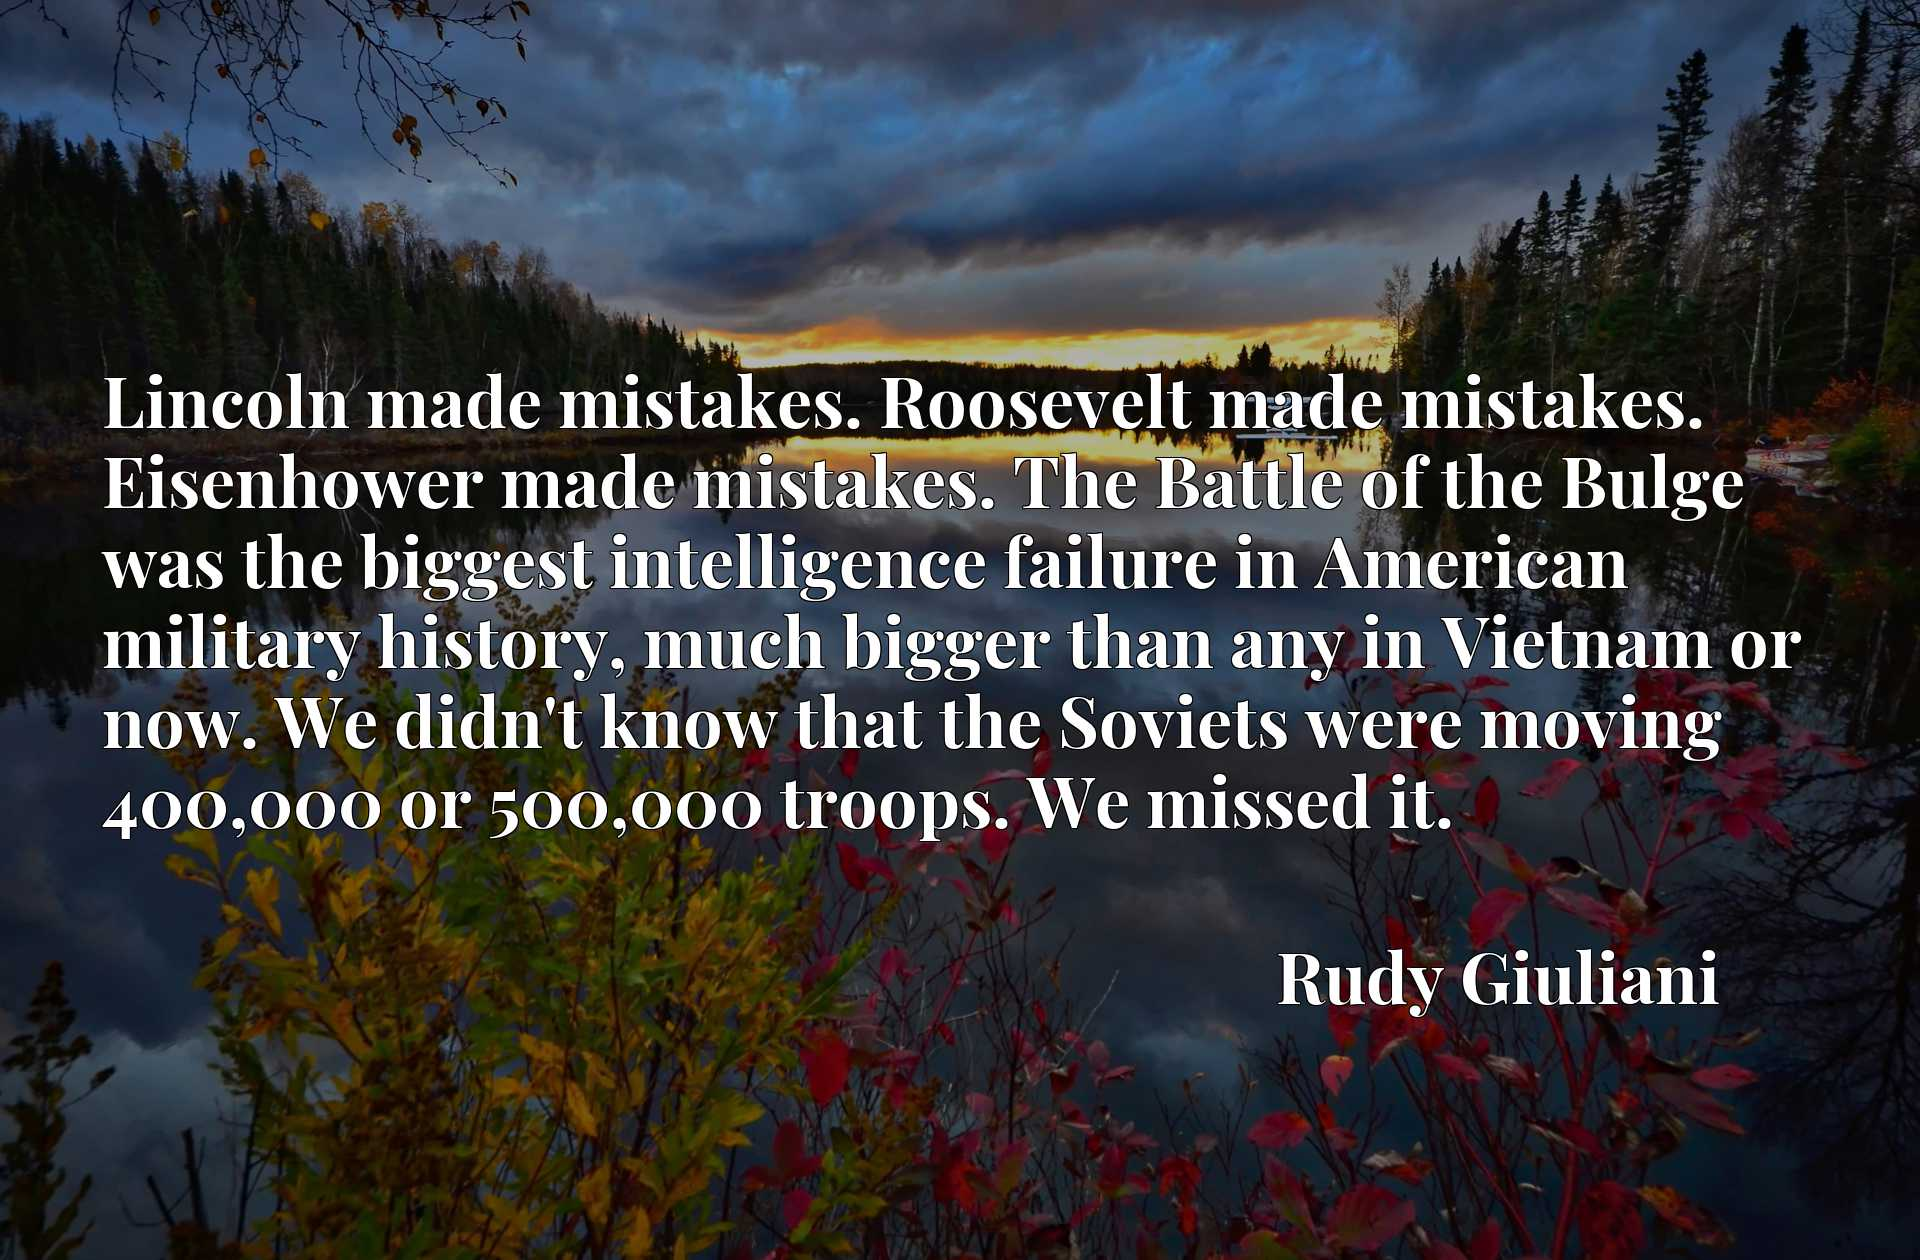 Lincoln made mistakes. Roosevelt made mistakes. Eisenhower made mistakes. The Battle of the Bulge was the biggest intelligence failure in American military history, much bigger than any in Vietnam or now. We didn't know that the Soviets were moving 400,000 or 500,000 troops. We missed it.